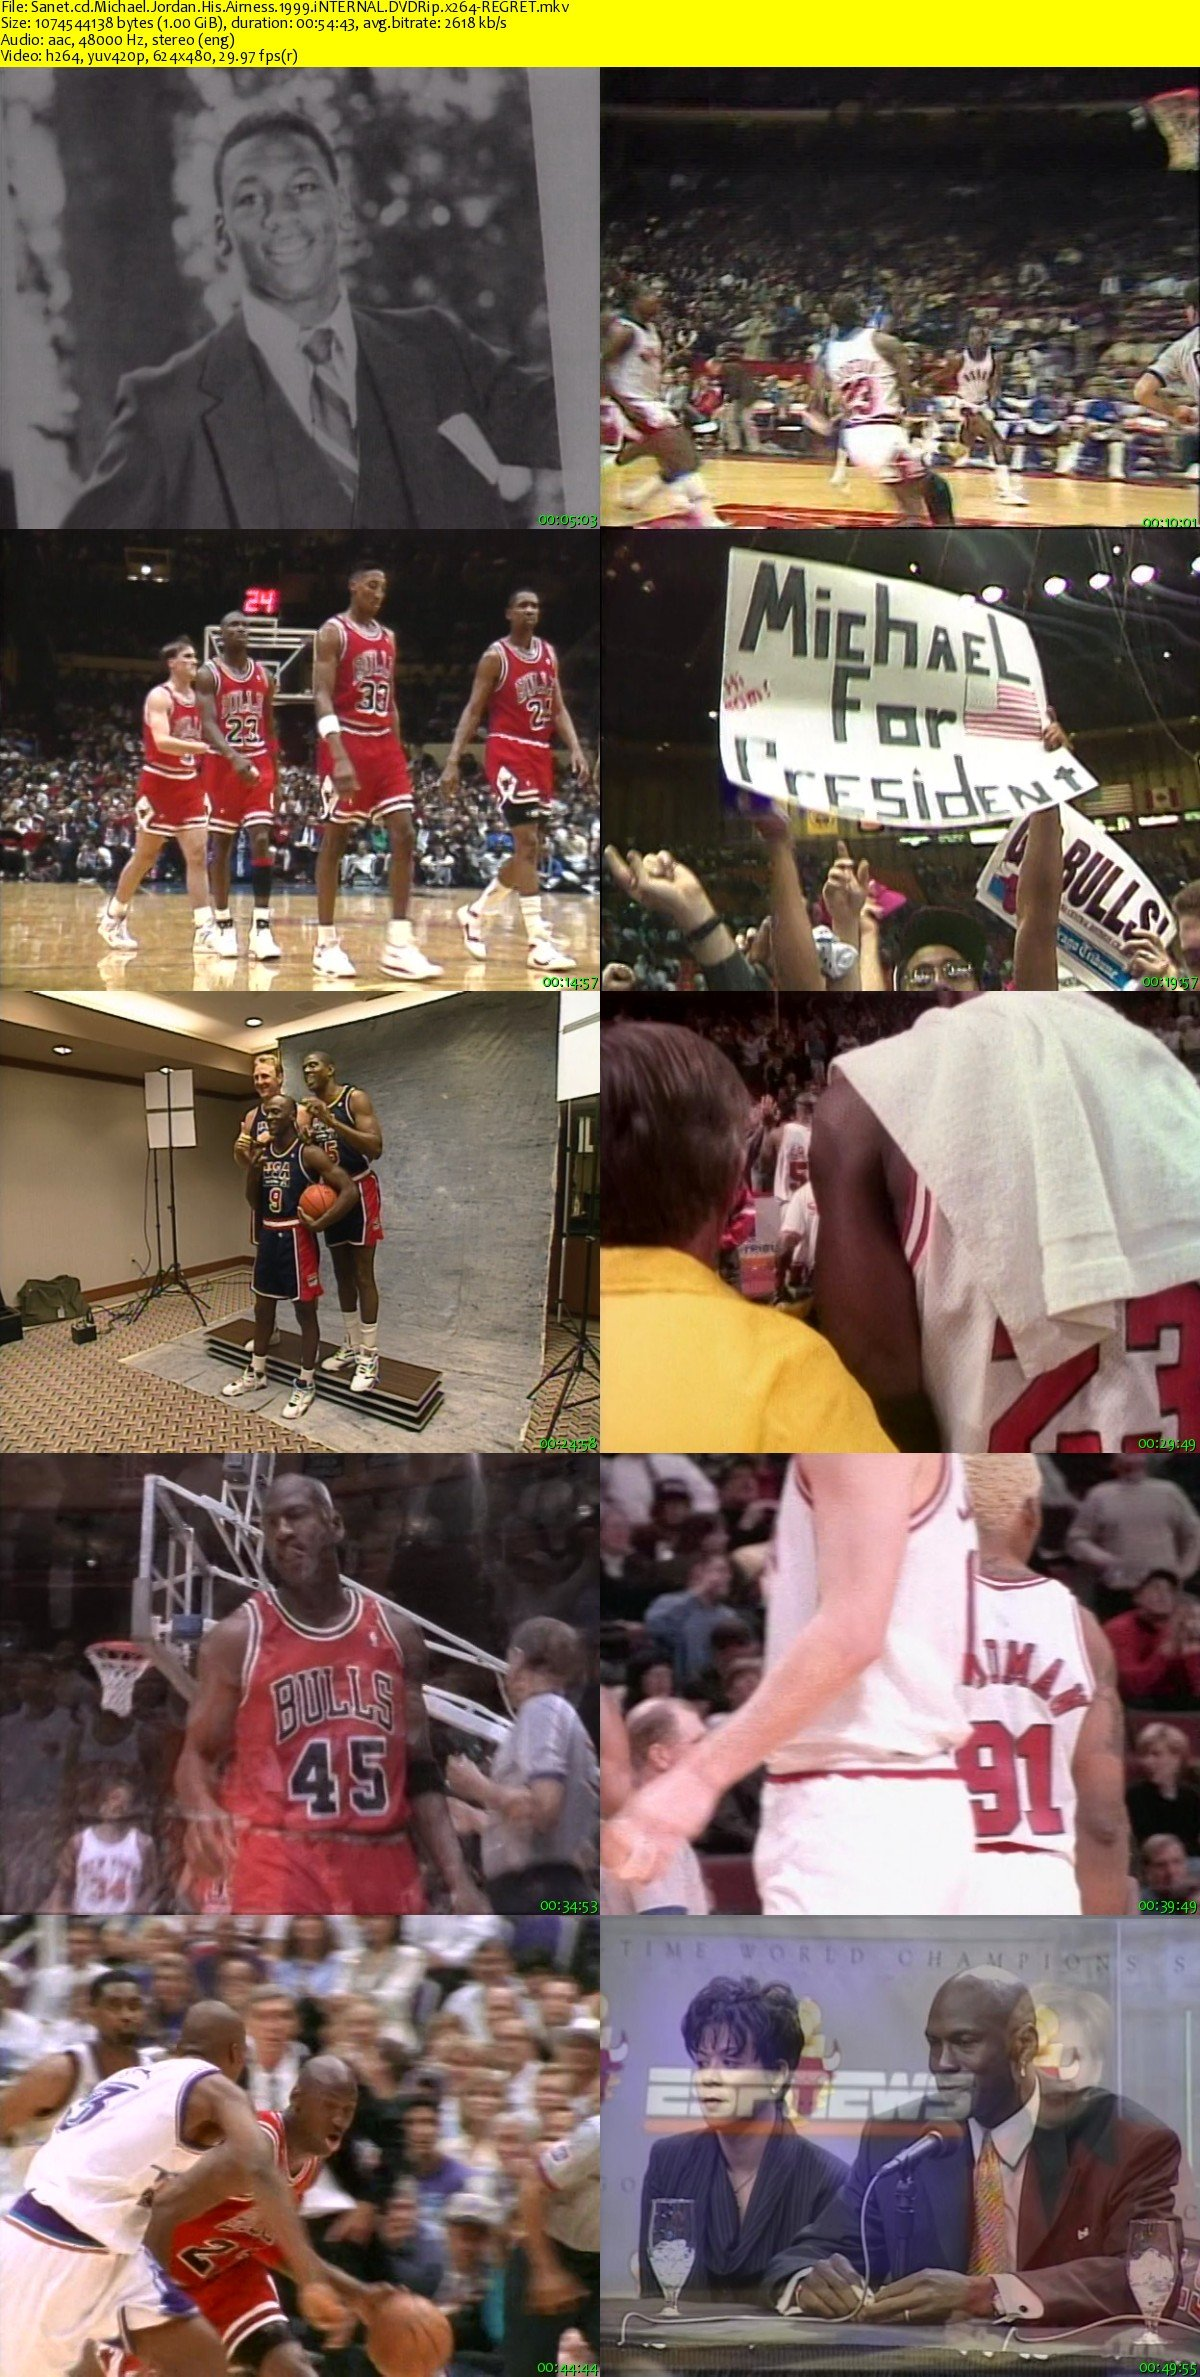 a biography of his airness michael jordan We scurried down the rabbit hole of mj lore to find out if his airness really   conversely, in michael jordan: the life, some bulls employees discuss how  jordan.